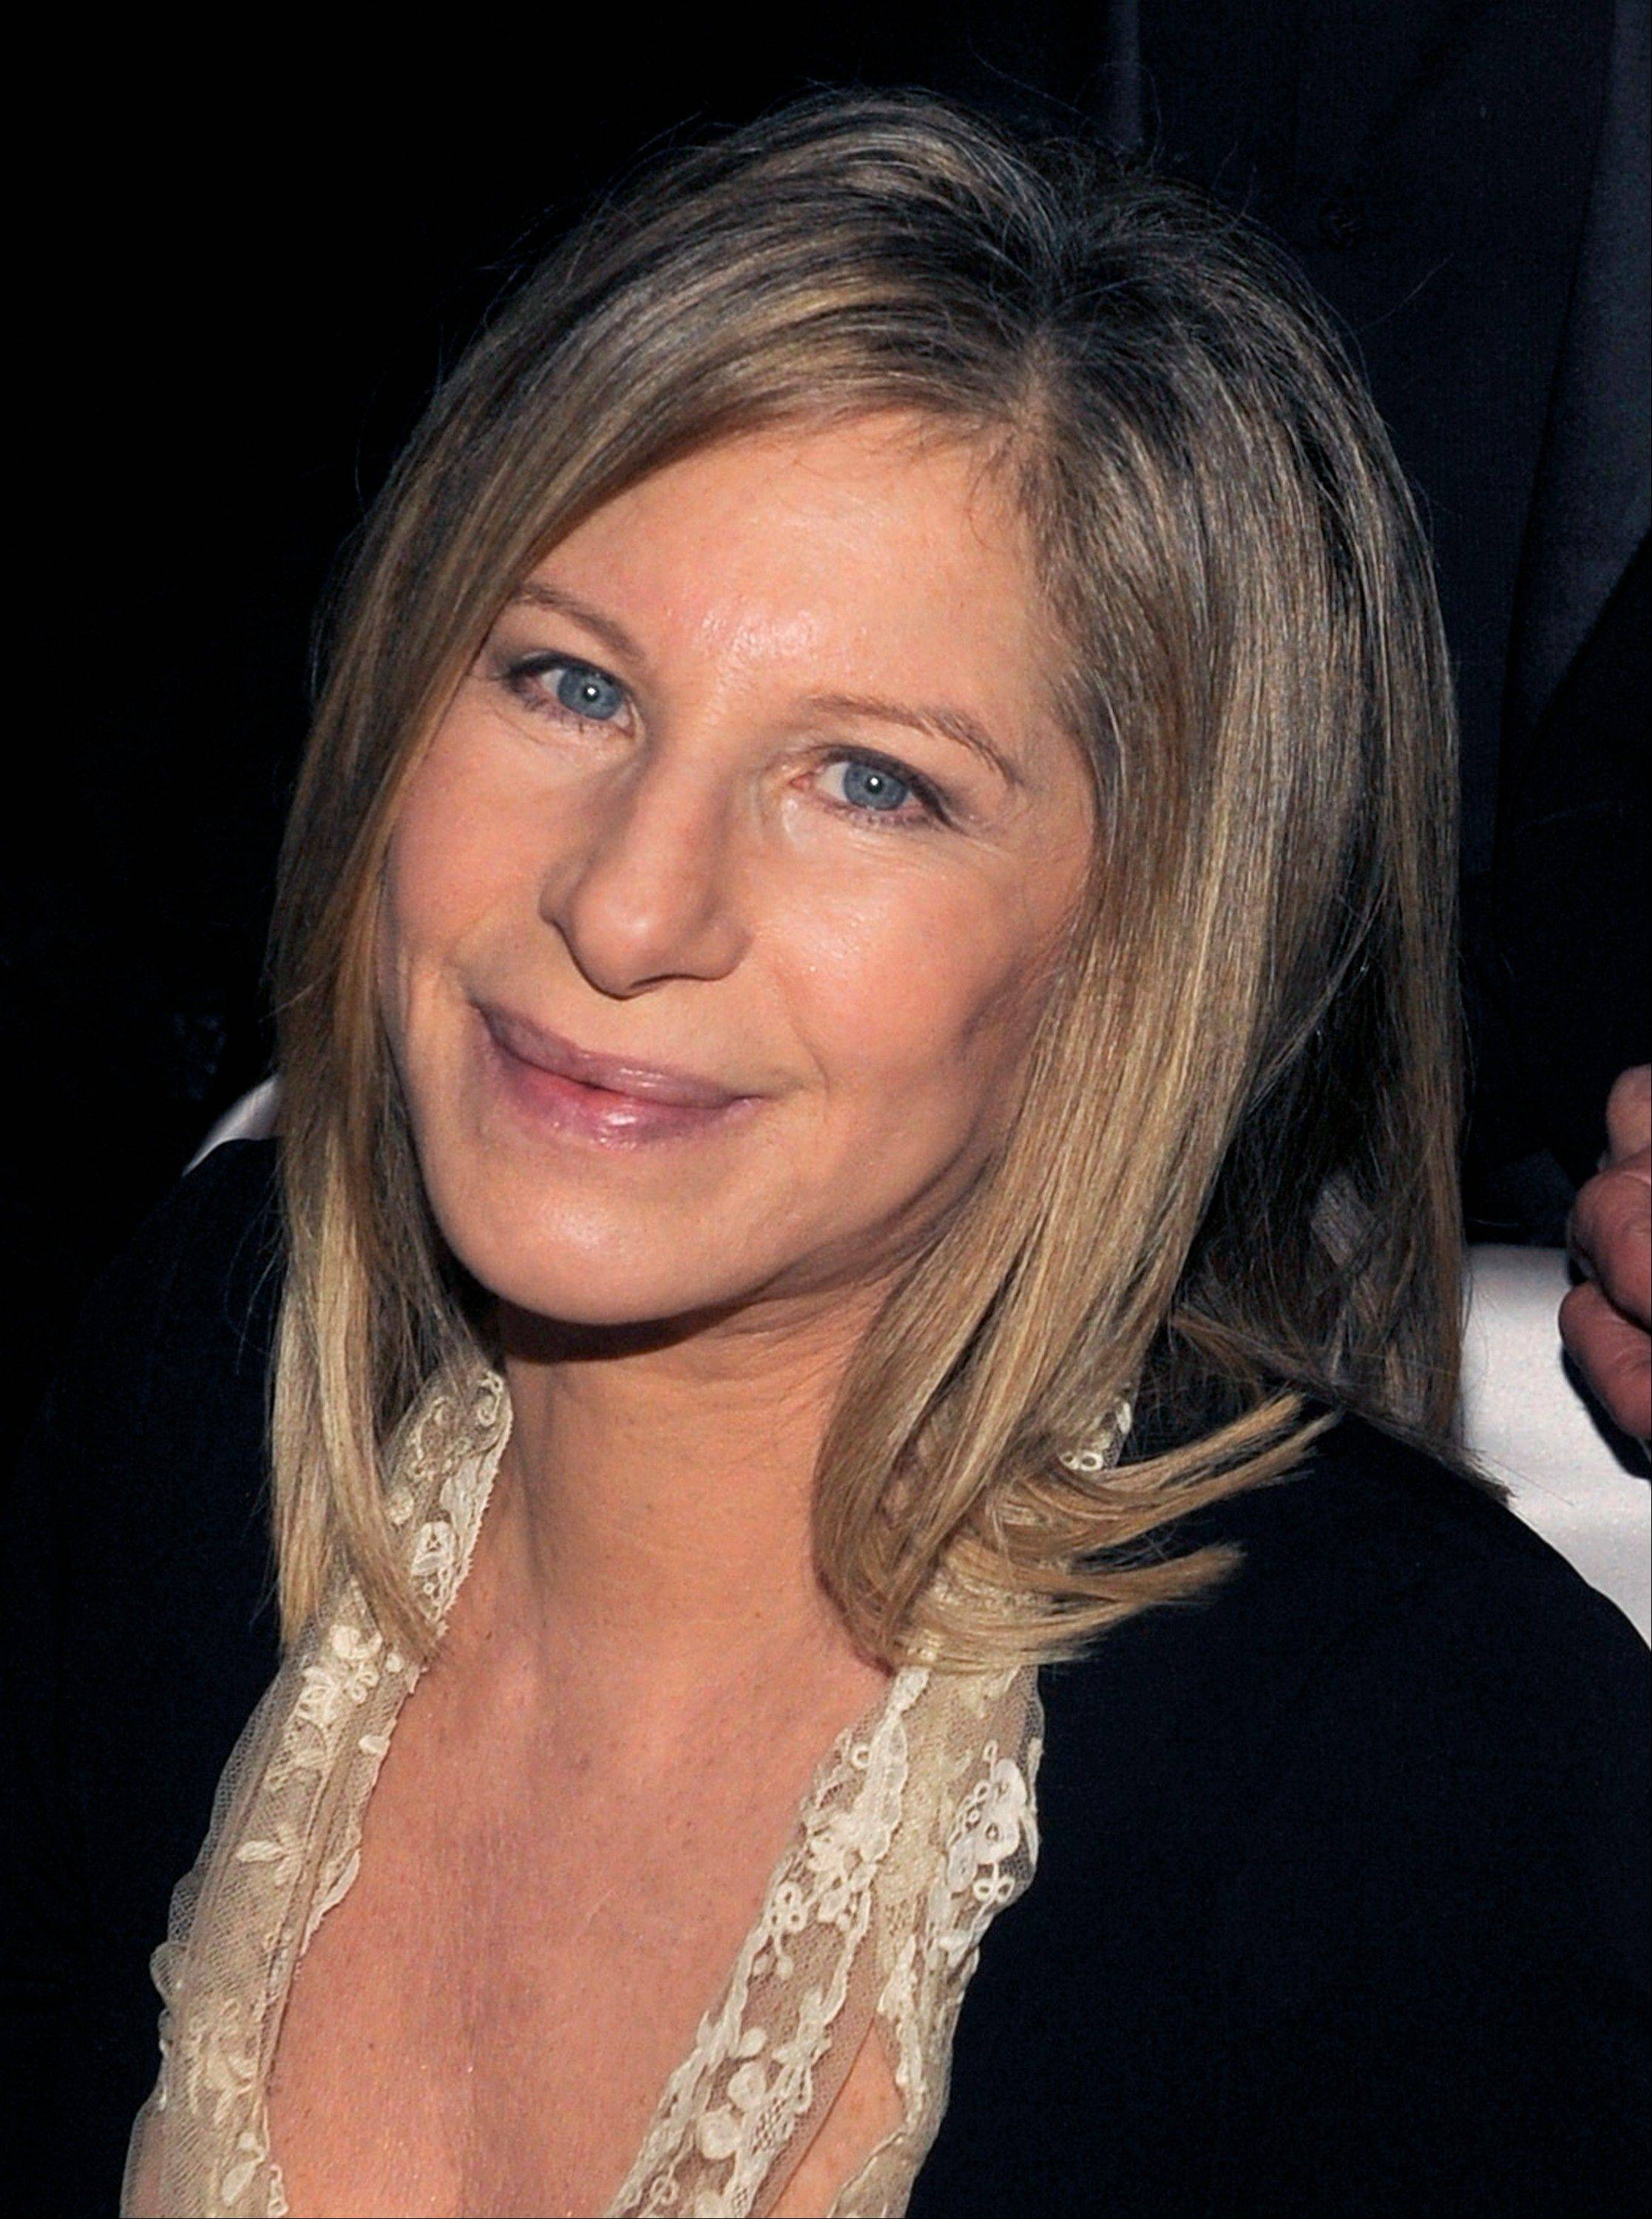 Barbra Streisand has added a Chicago date at the United Center on Friday, Oct. 26, to her upcoming concert tour.